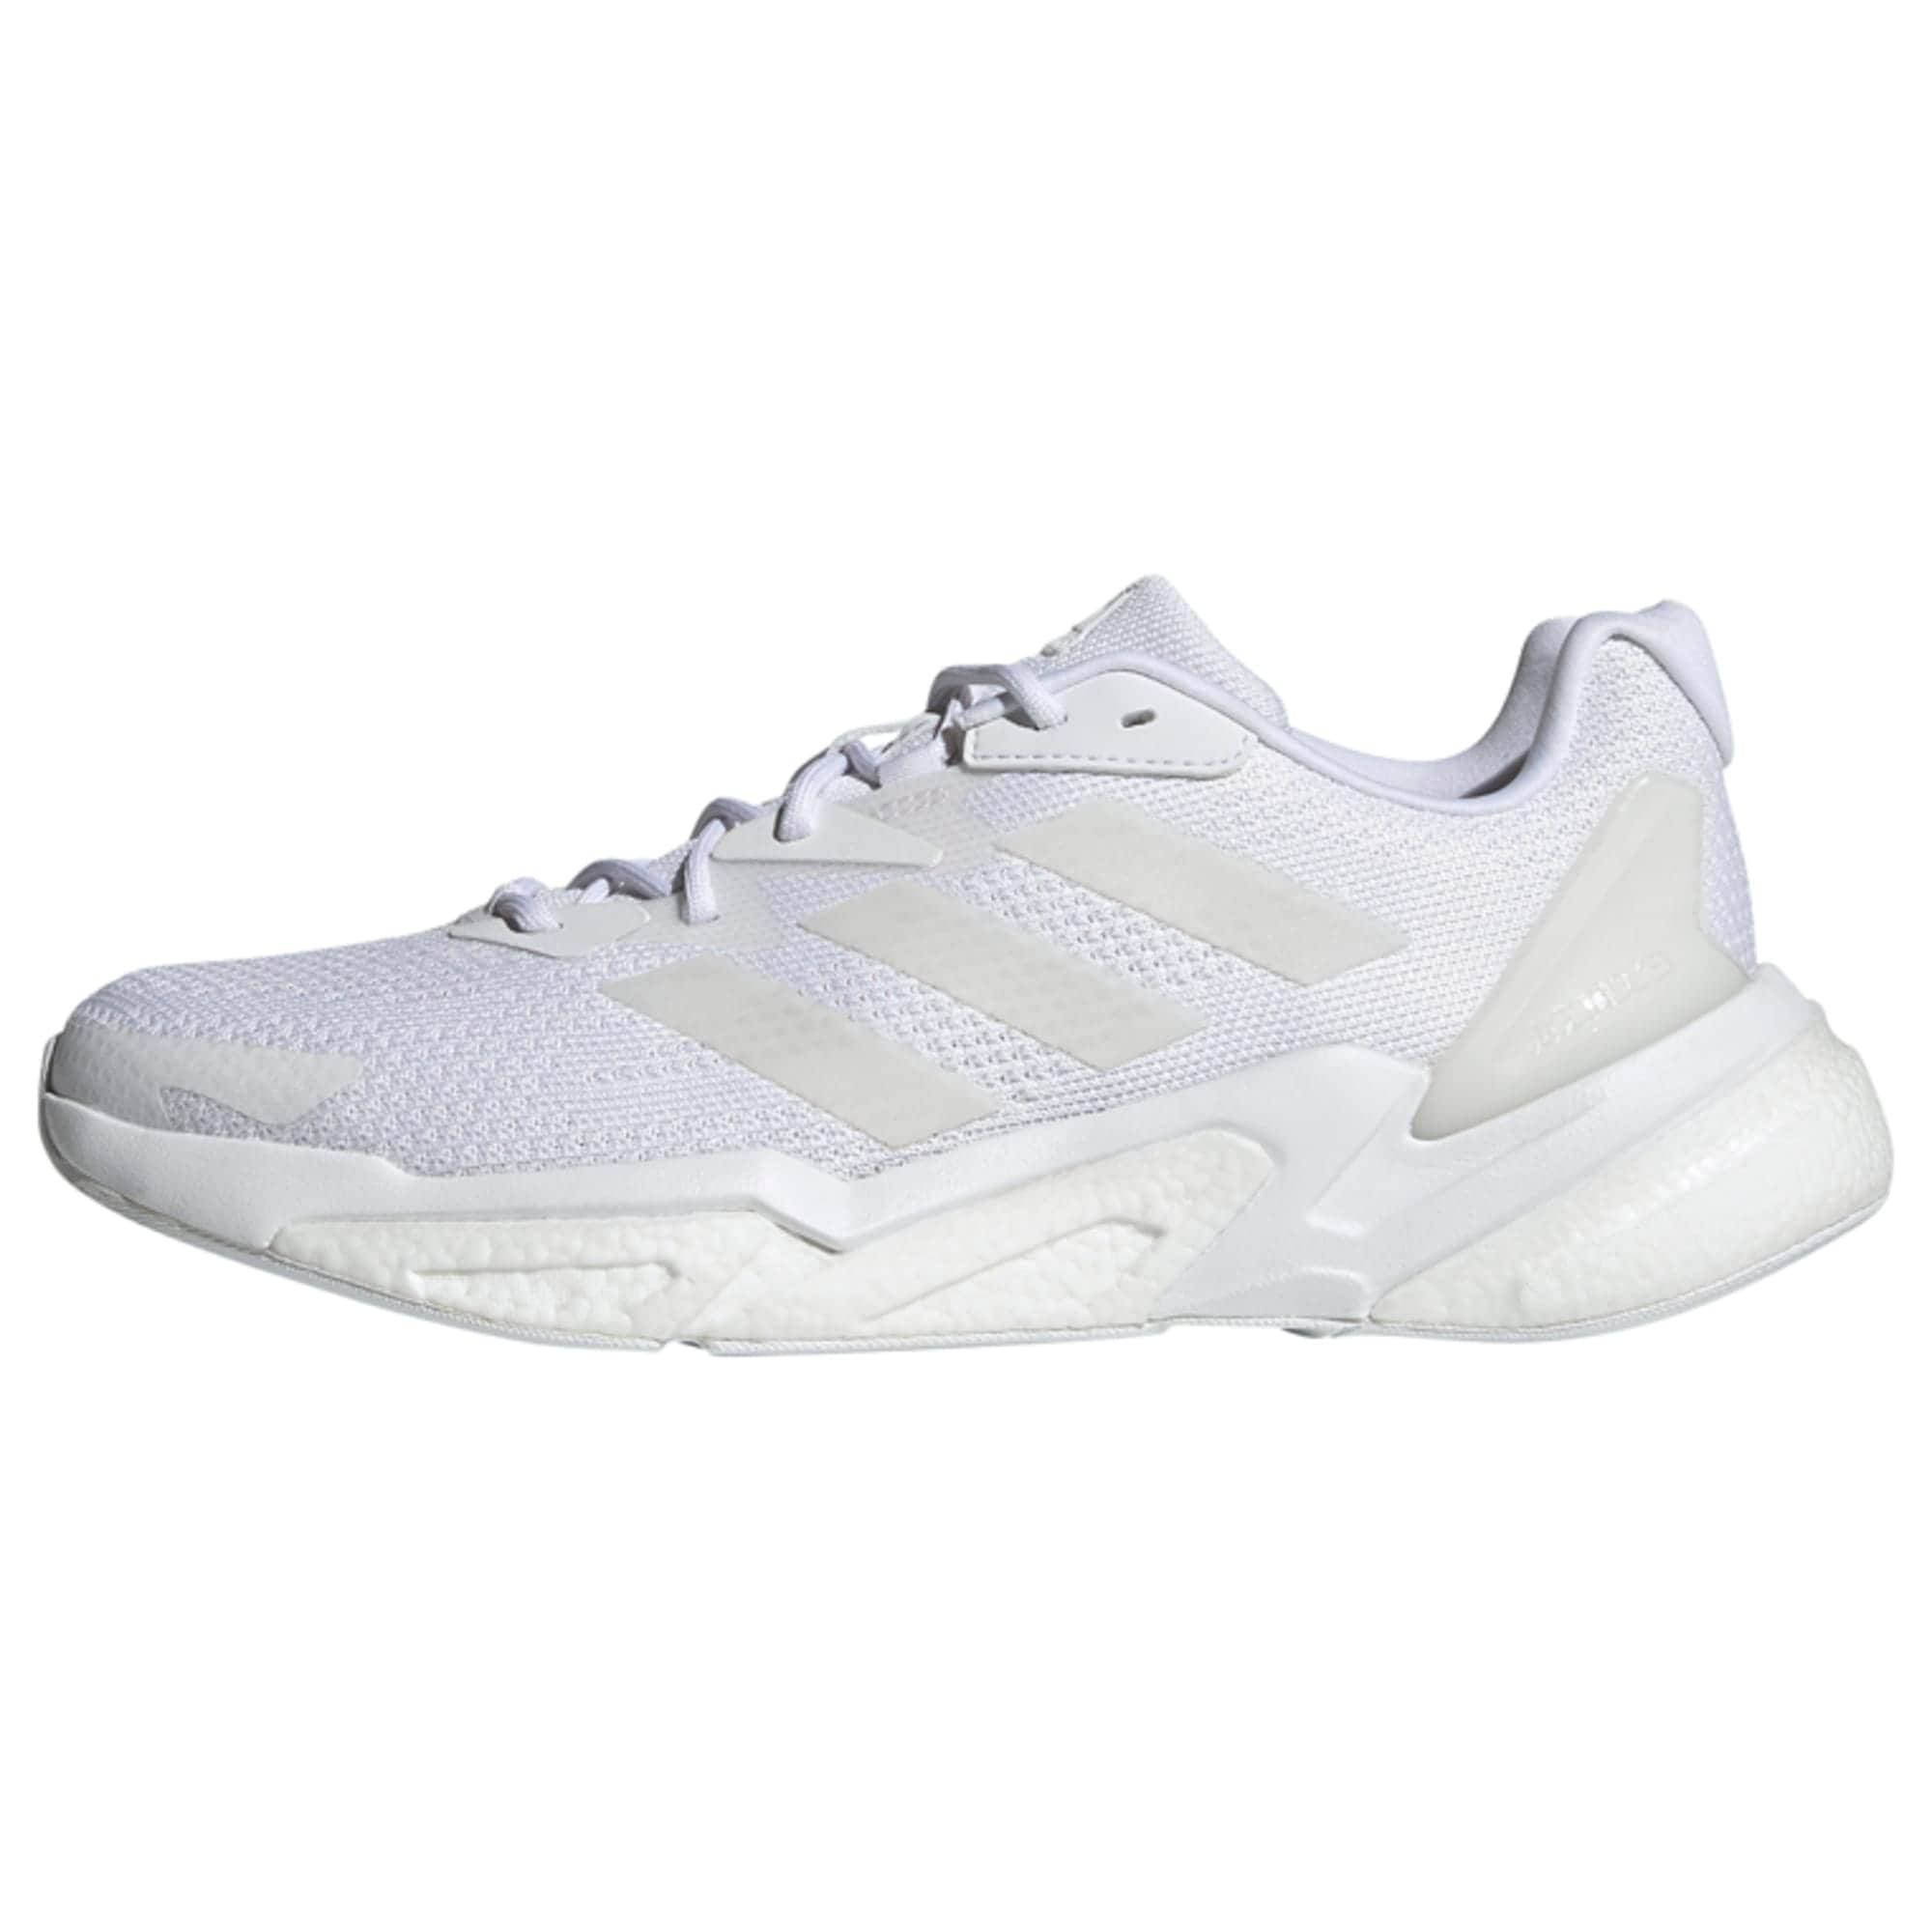 ADIDAS PERFORMANCE Chaussure de course  - Blanc - Taille: 12 - male